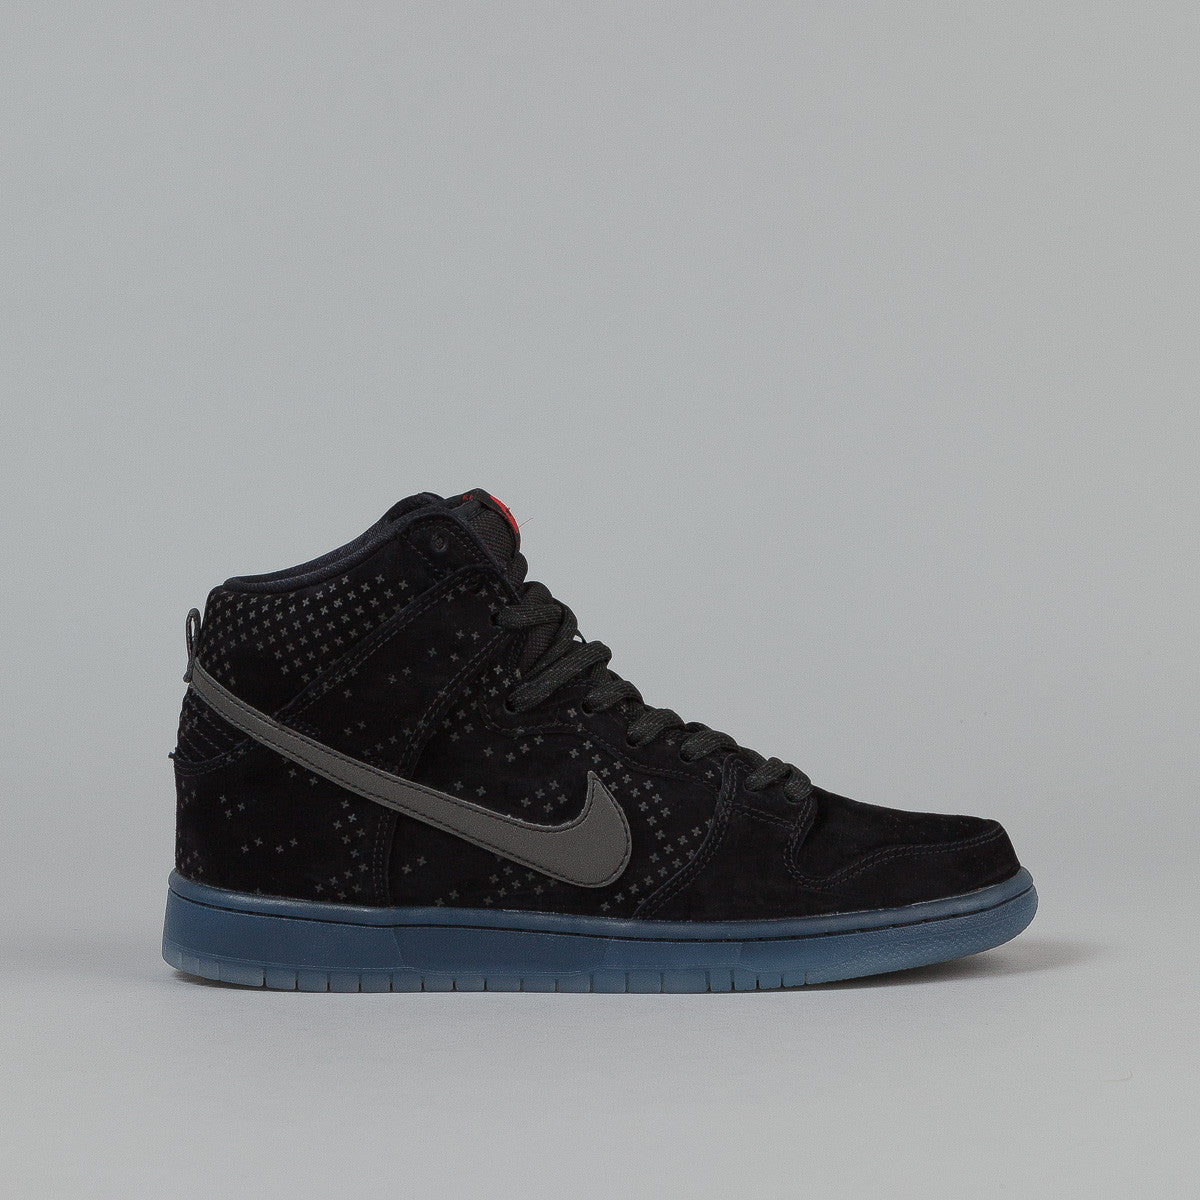 Nike SB Dunk High Premium Flash